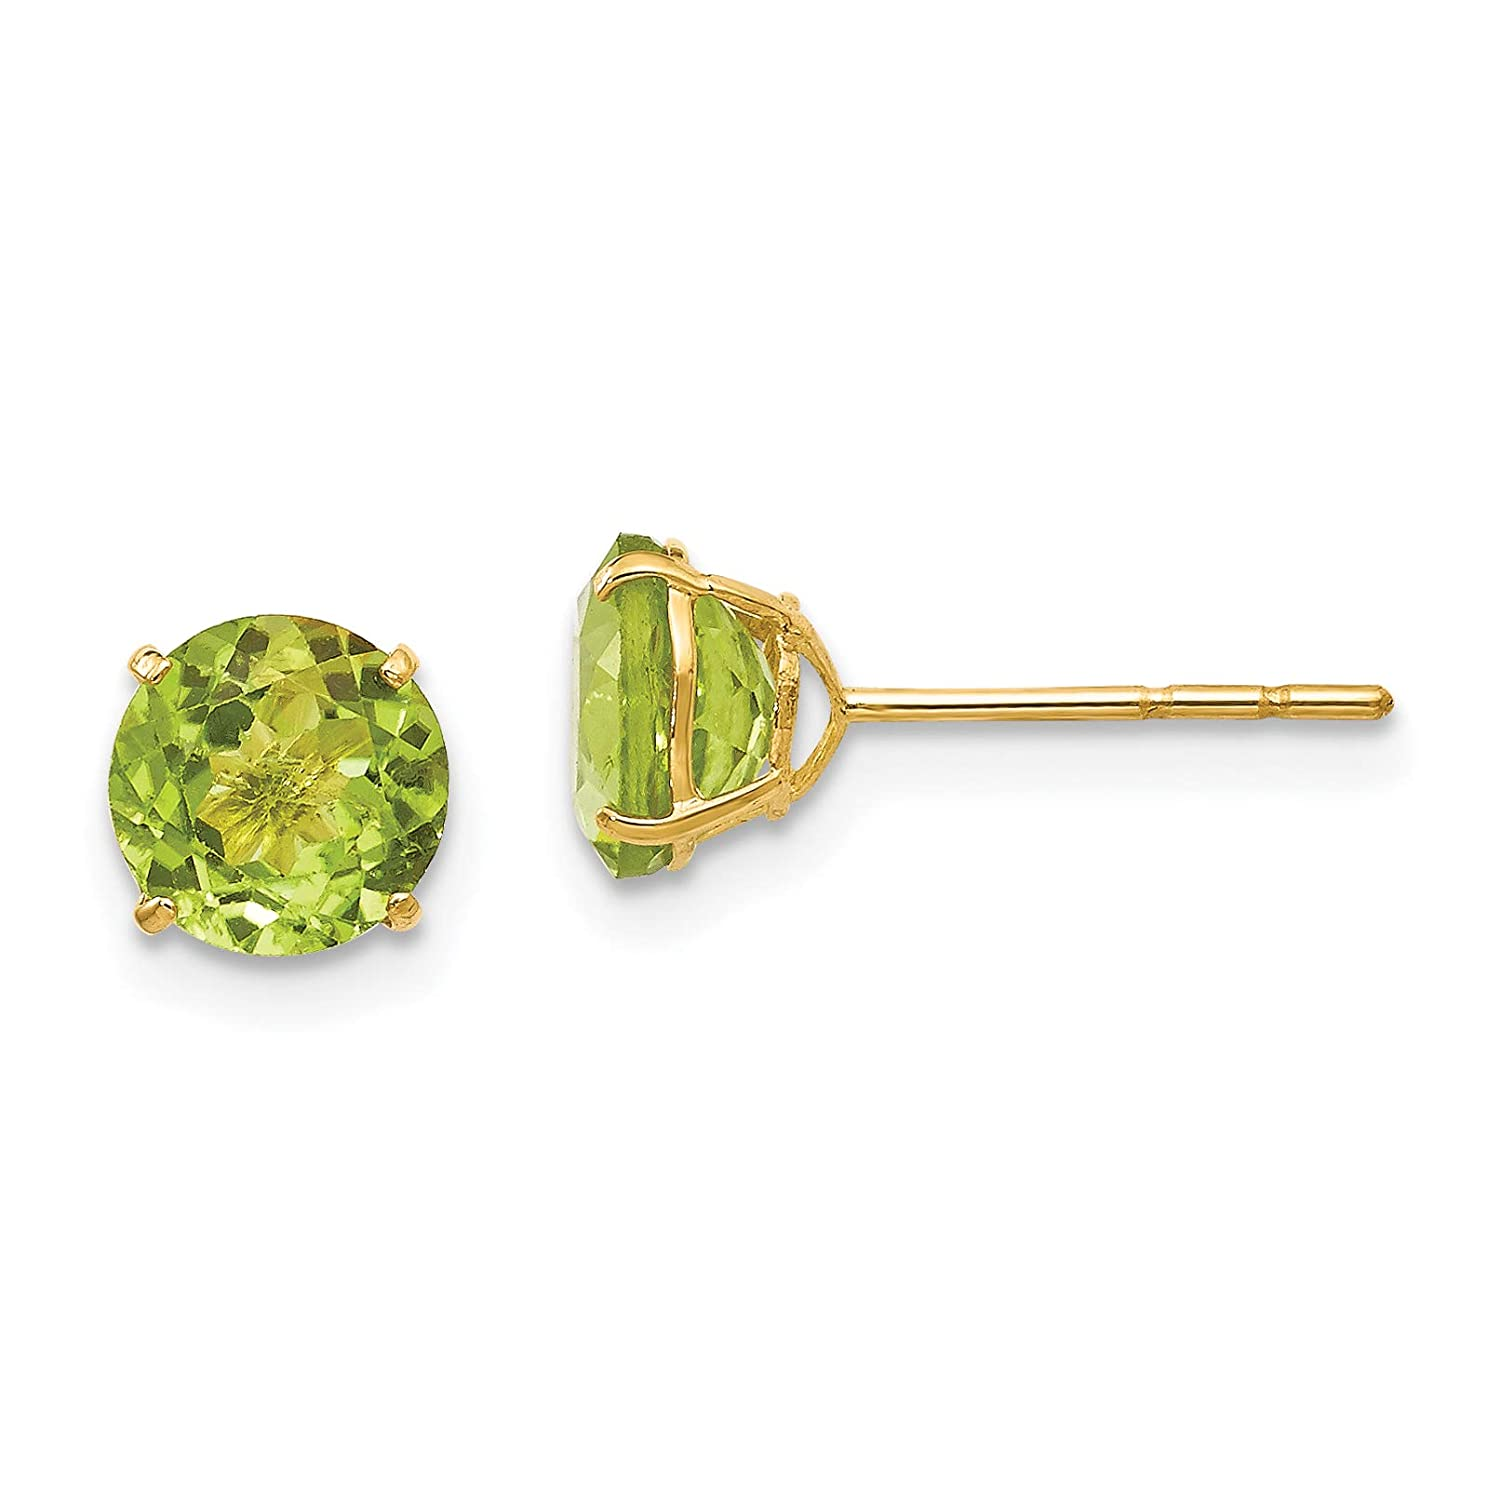 14K Yellow Gold Madi K Childrens 6 MM Round Peridot Post Stud Earrings